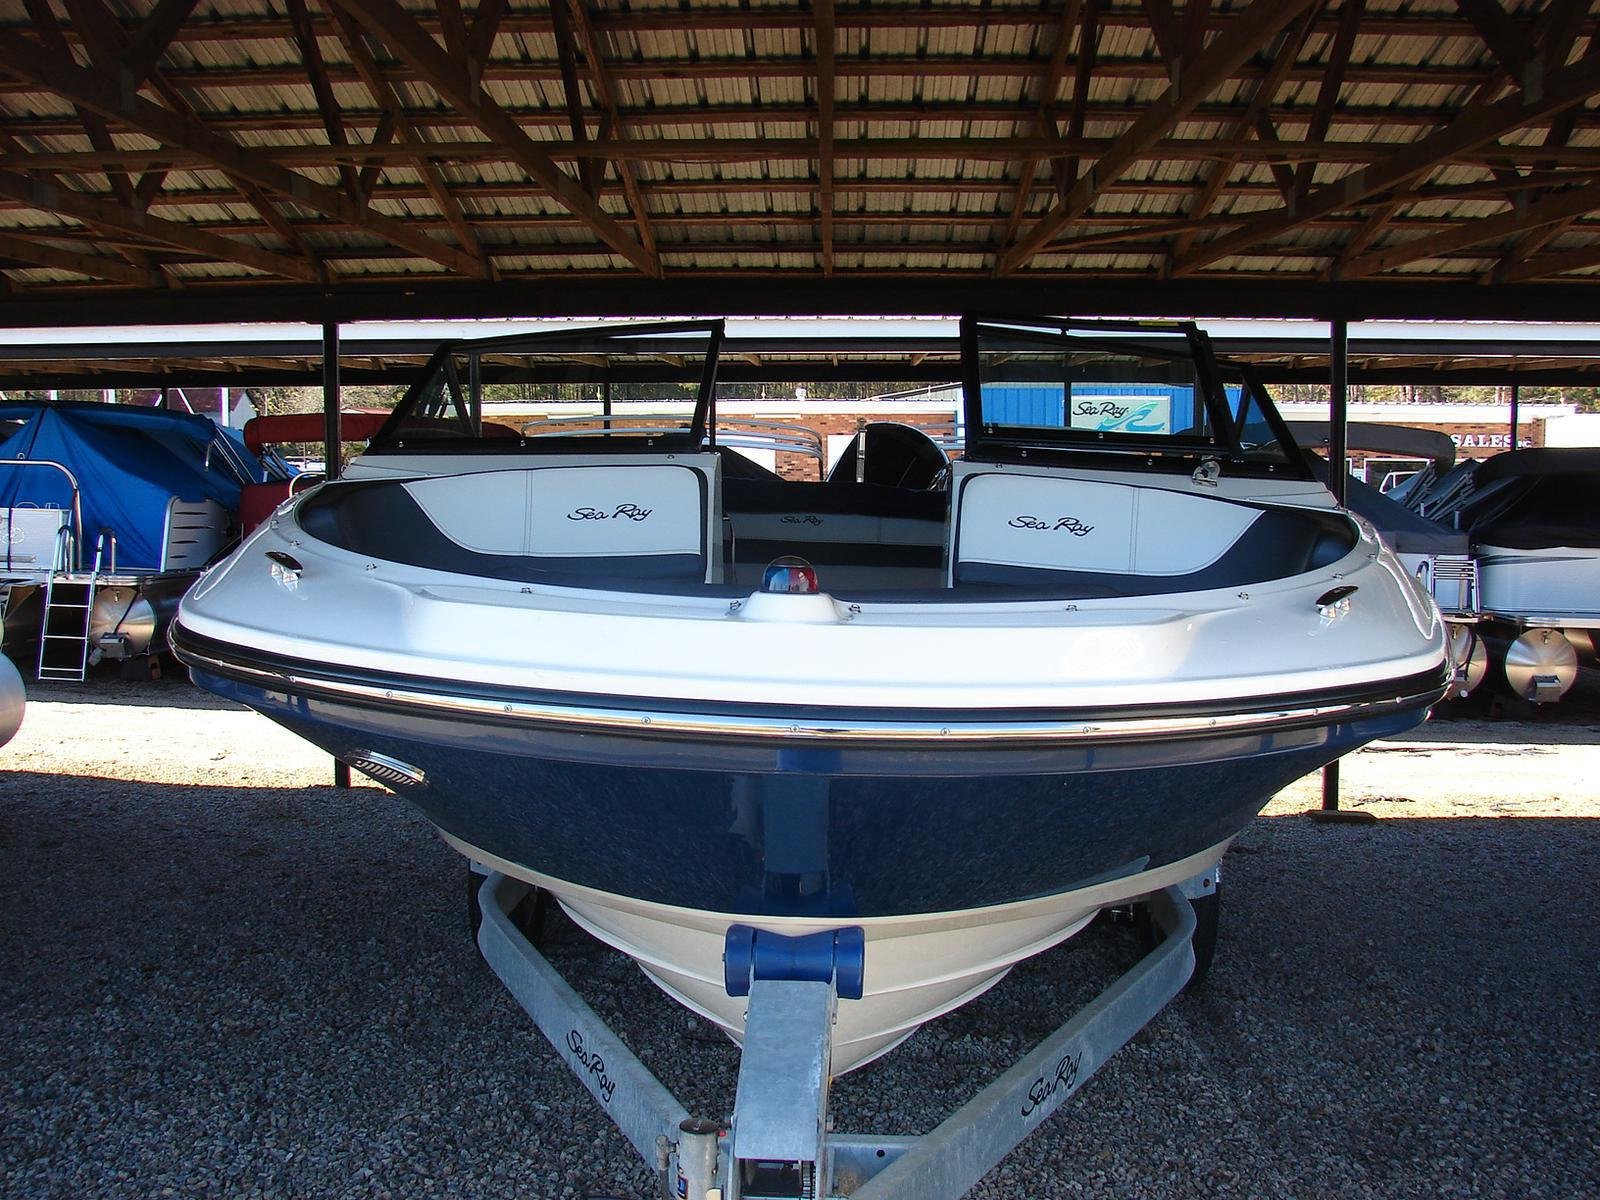 hight resolution of 2018 sea ray spx 210 ob for sale in kittrell nc overby marine sales service inc lake gaston 252 586 3593